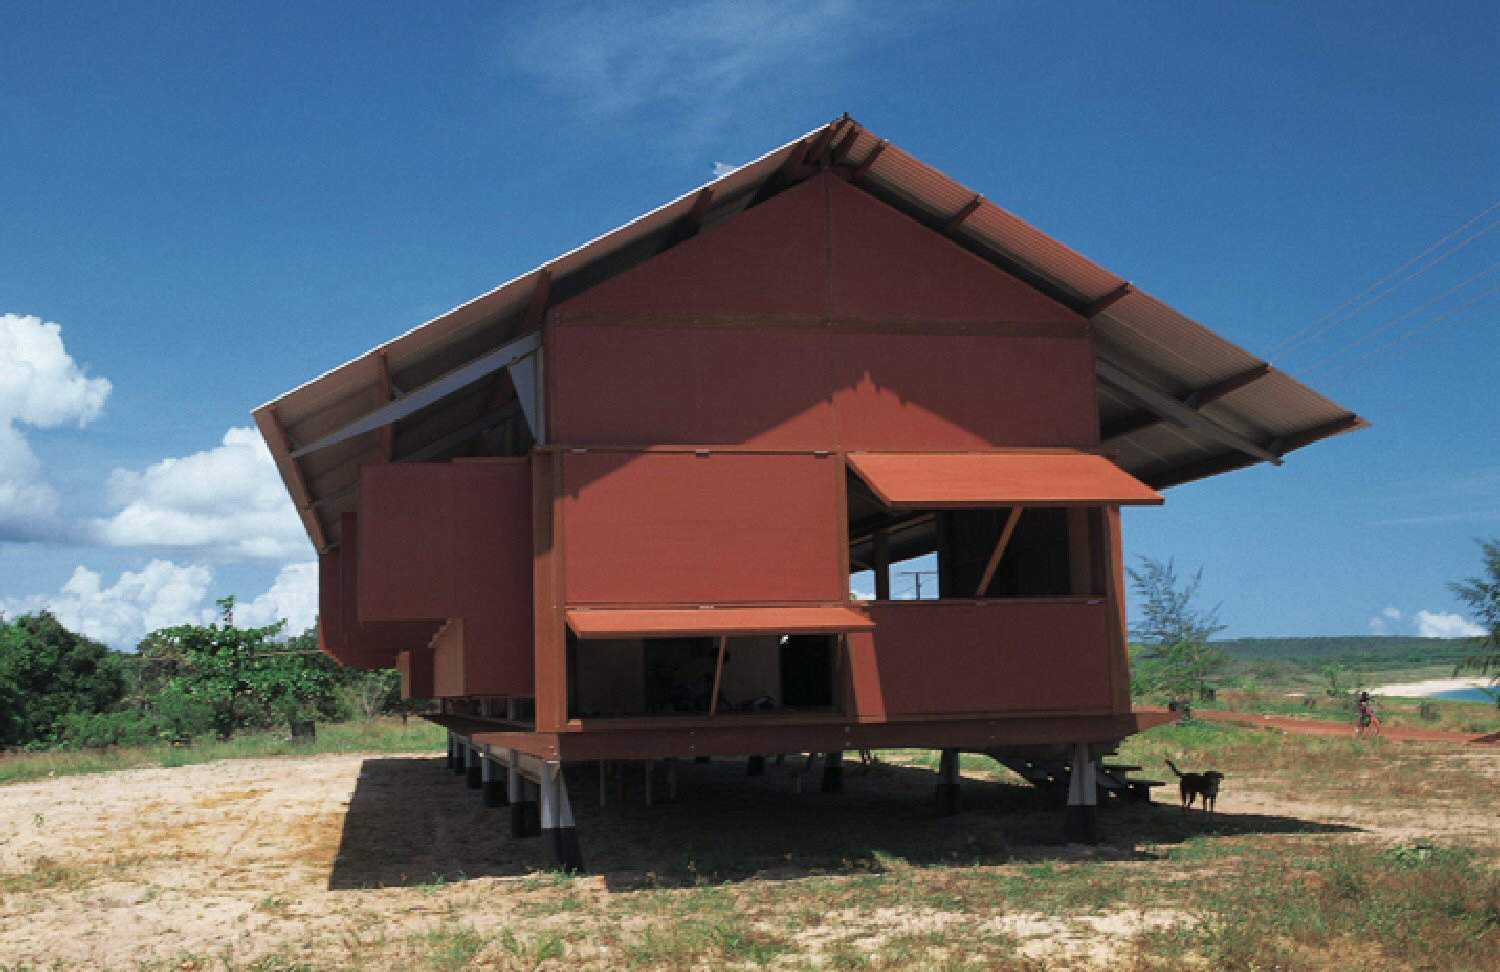 exterior of shed-like building from the narrow end, red facade with thin metal roof, large shutter openings